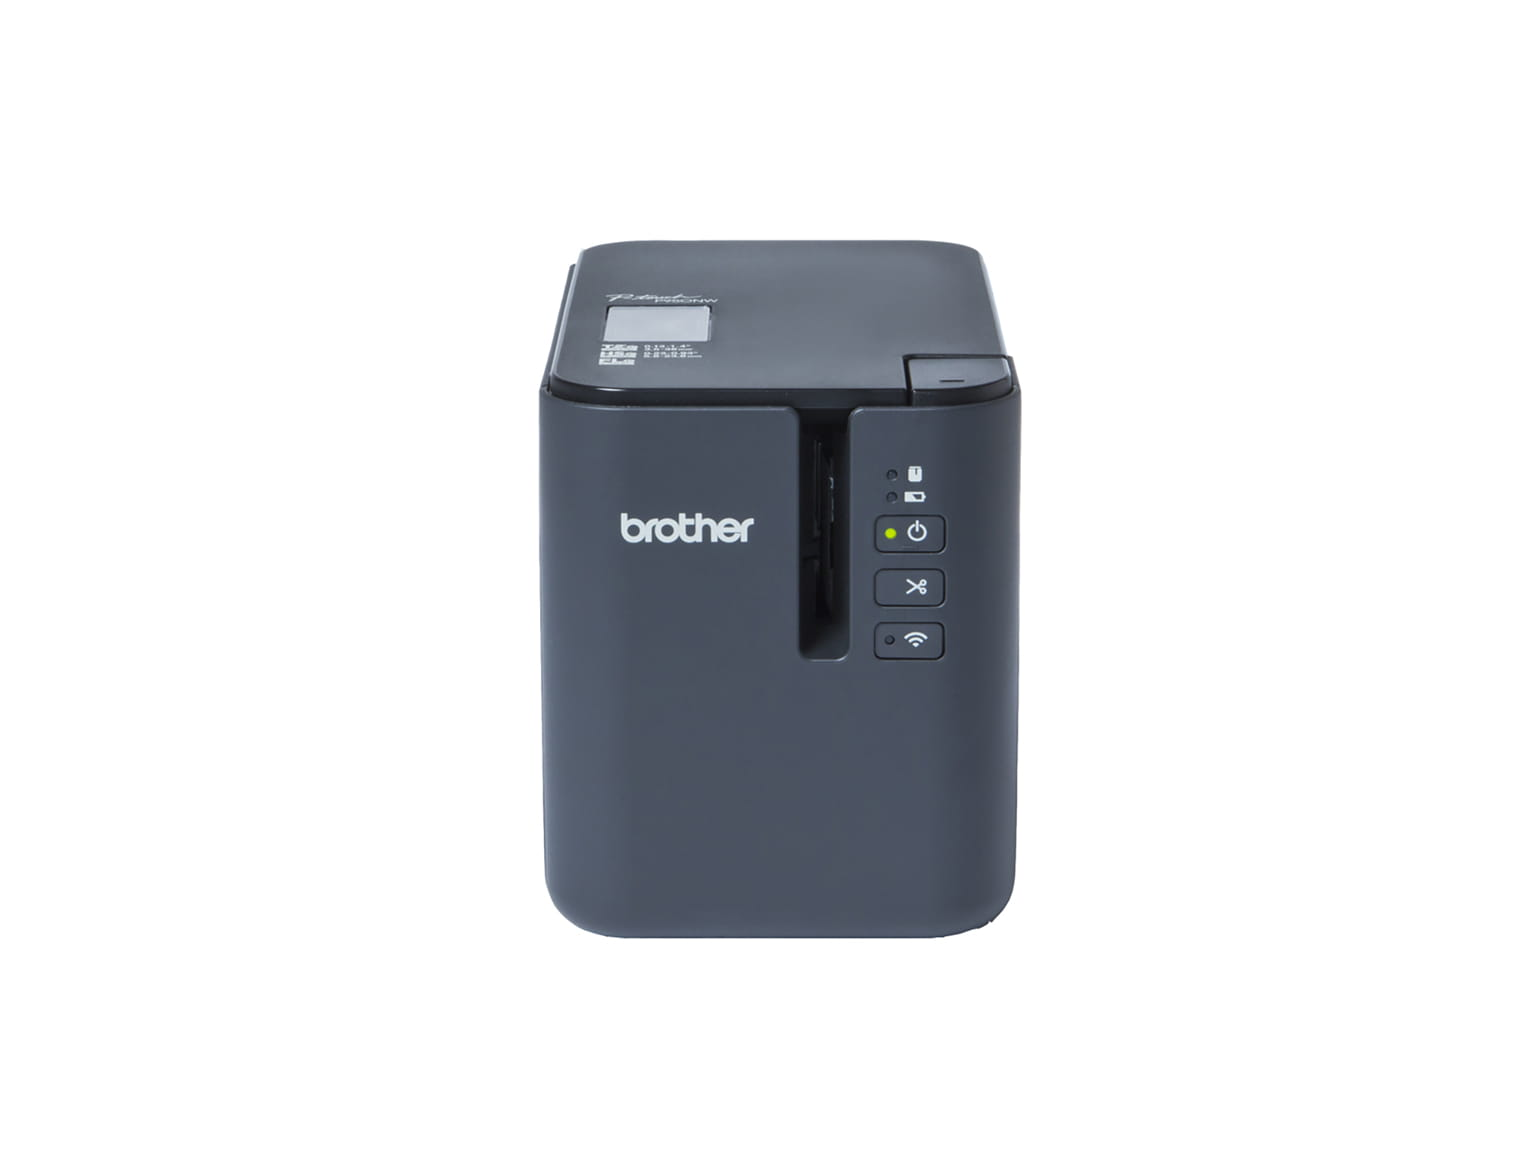 Brother PT-P900 series durable label printer